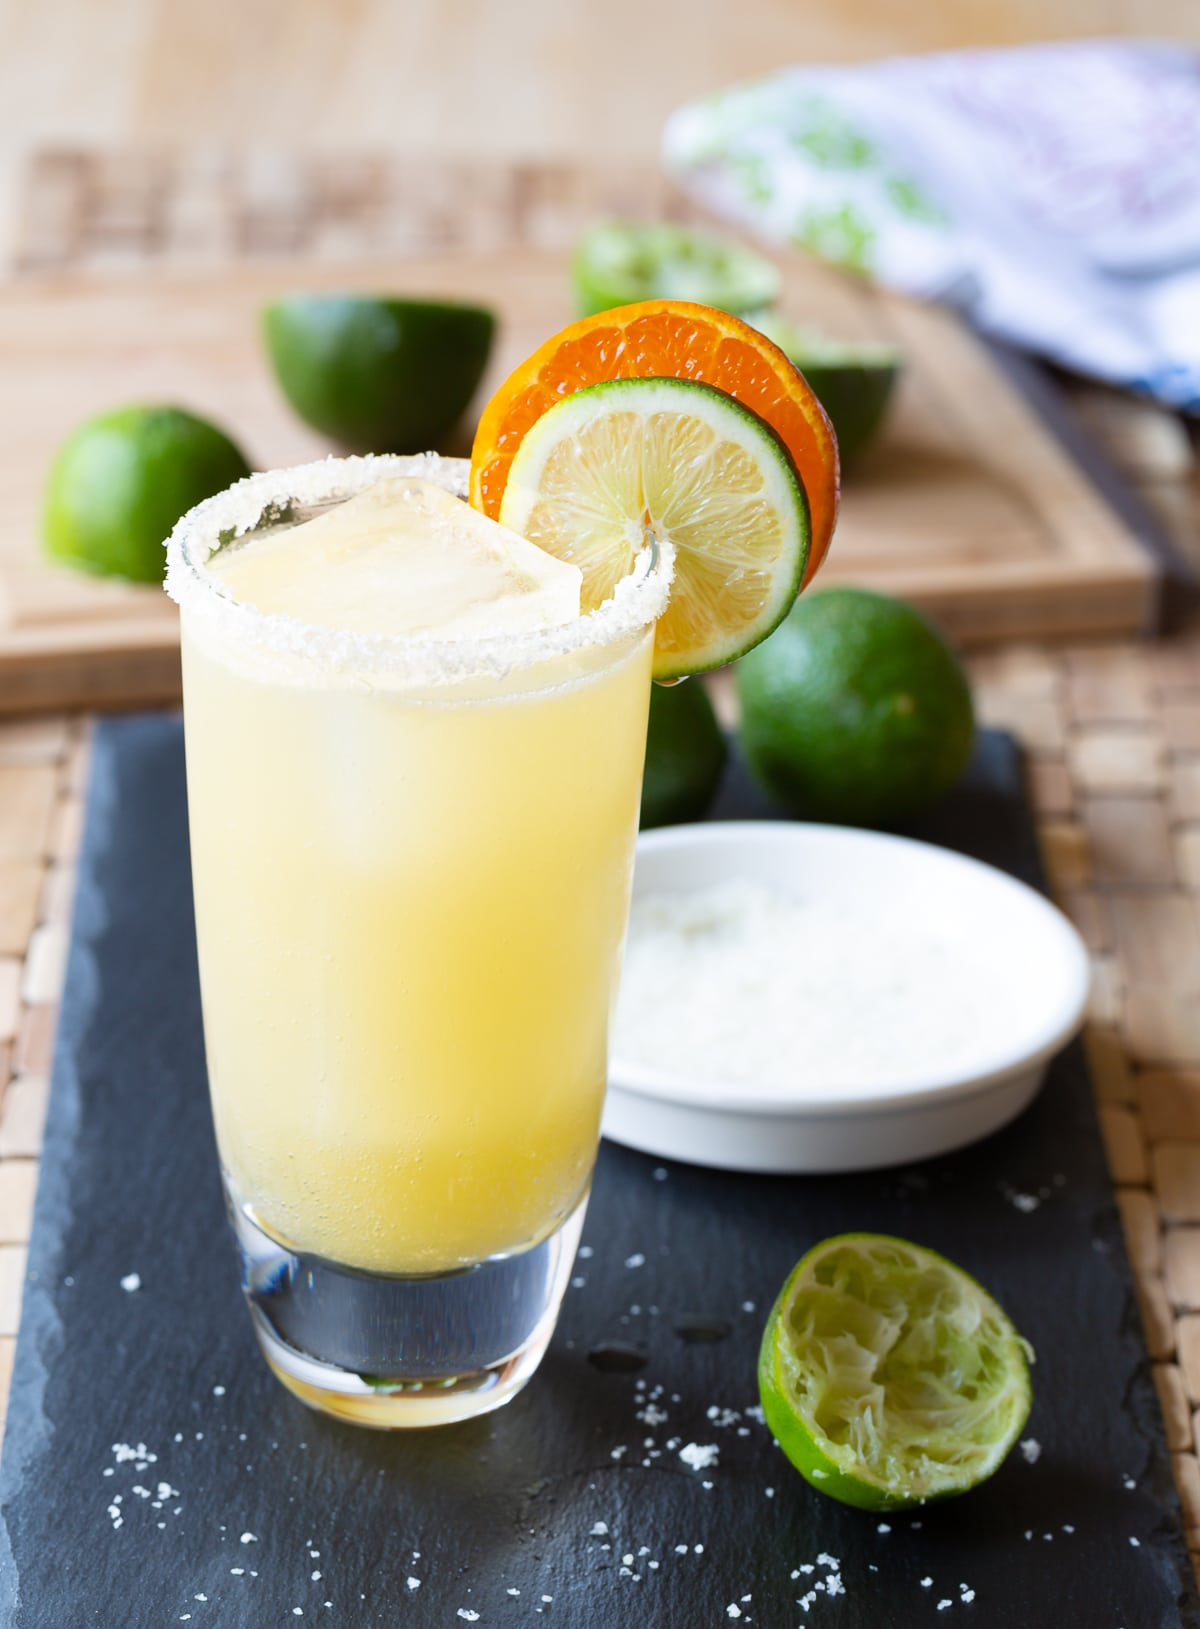 Easy Margarita Recipe #CincodeMayo #Margaritas #margs #Mexican #Cocktails #tequila